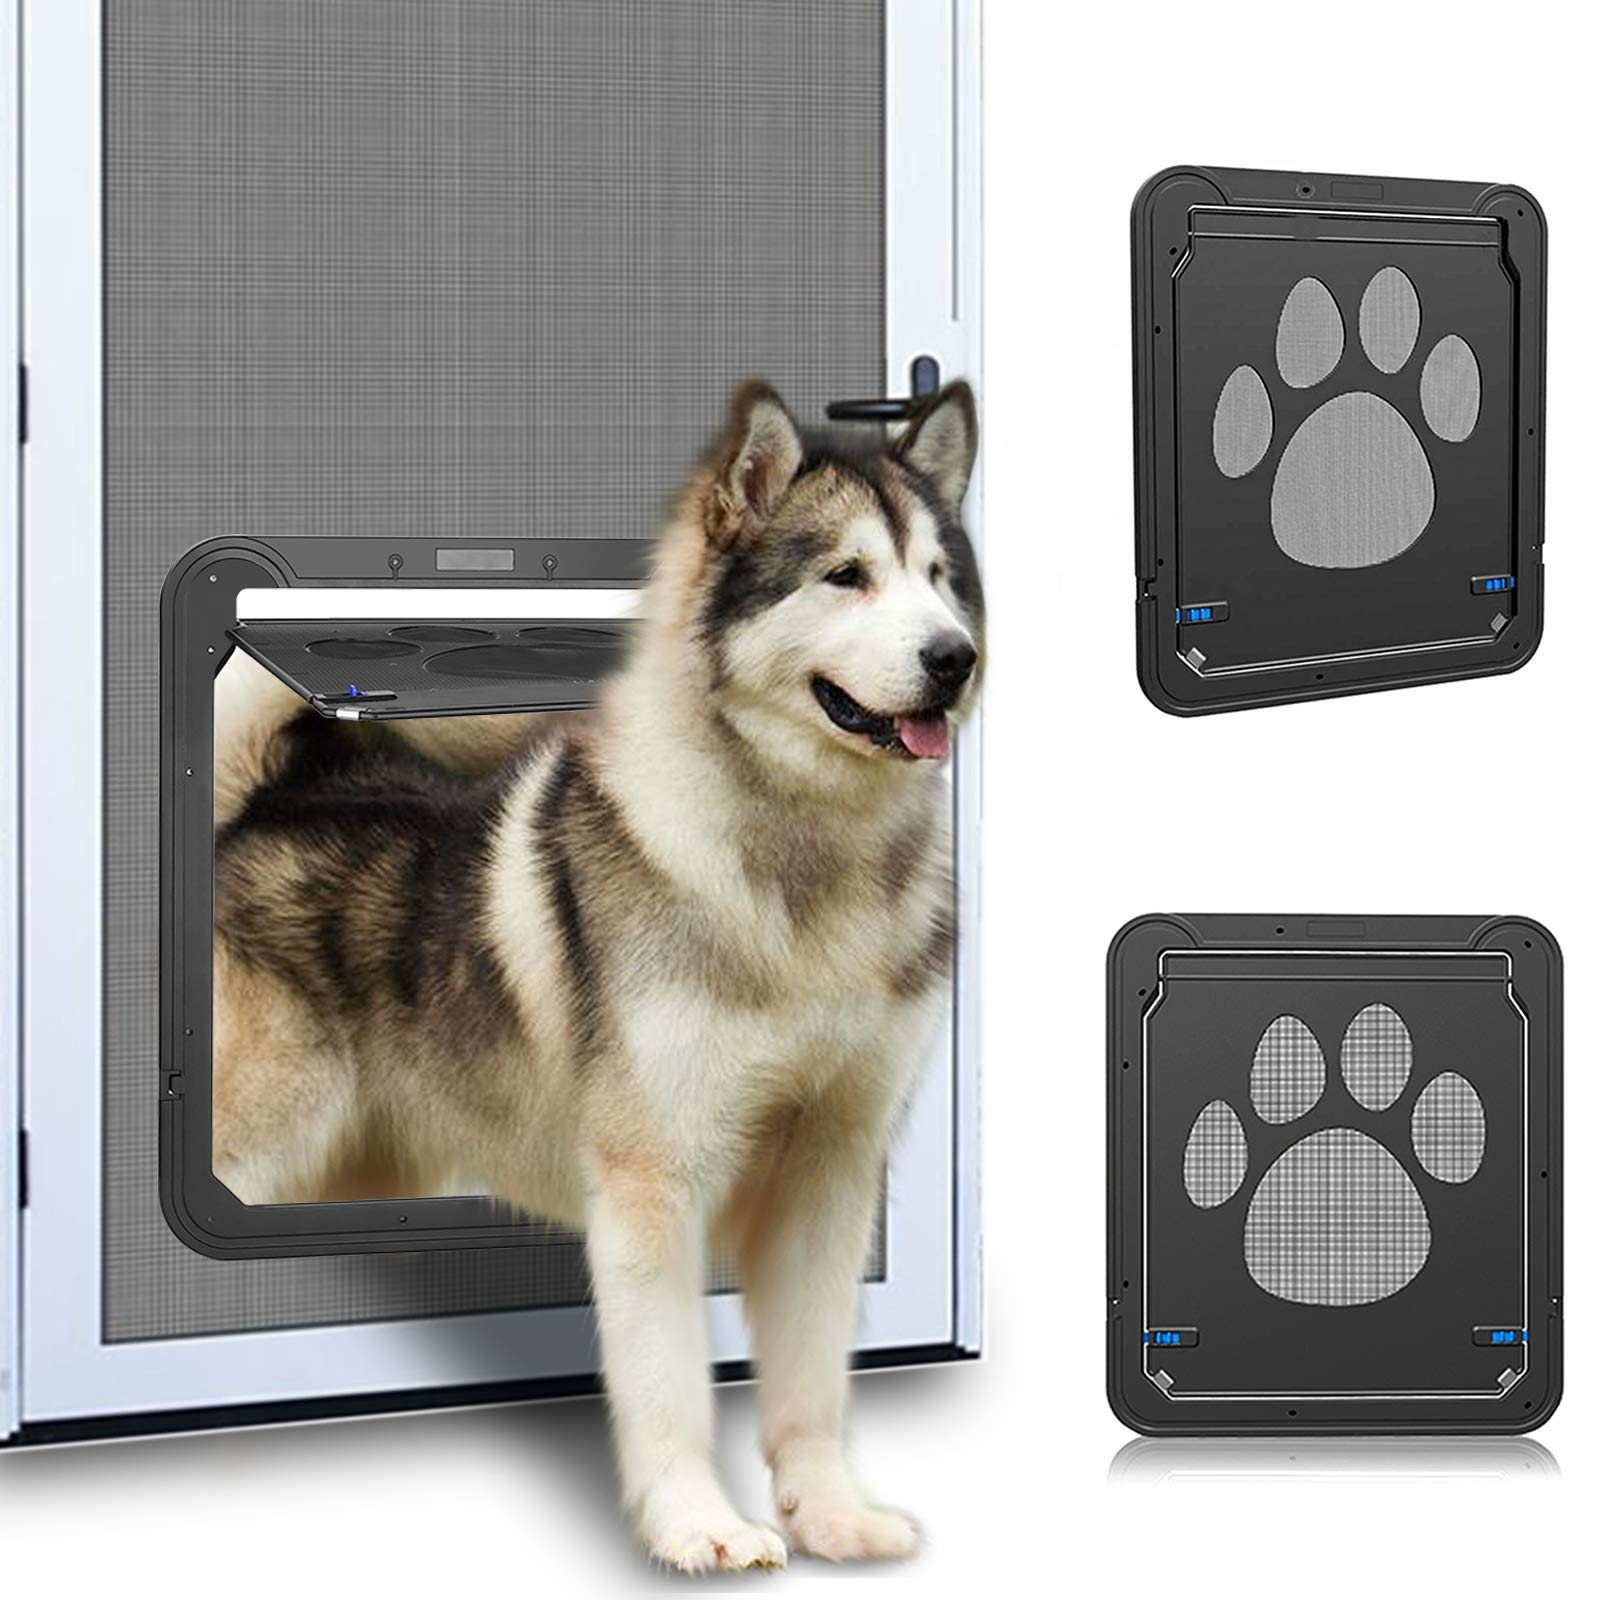 OWNPETS Dog Screen Door, Lockable Pet Screen Door, Magnetic Self-Closing Screen Door with Locking Function, Sturdy Screen Door for Dog Cat by OWNPETS